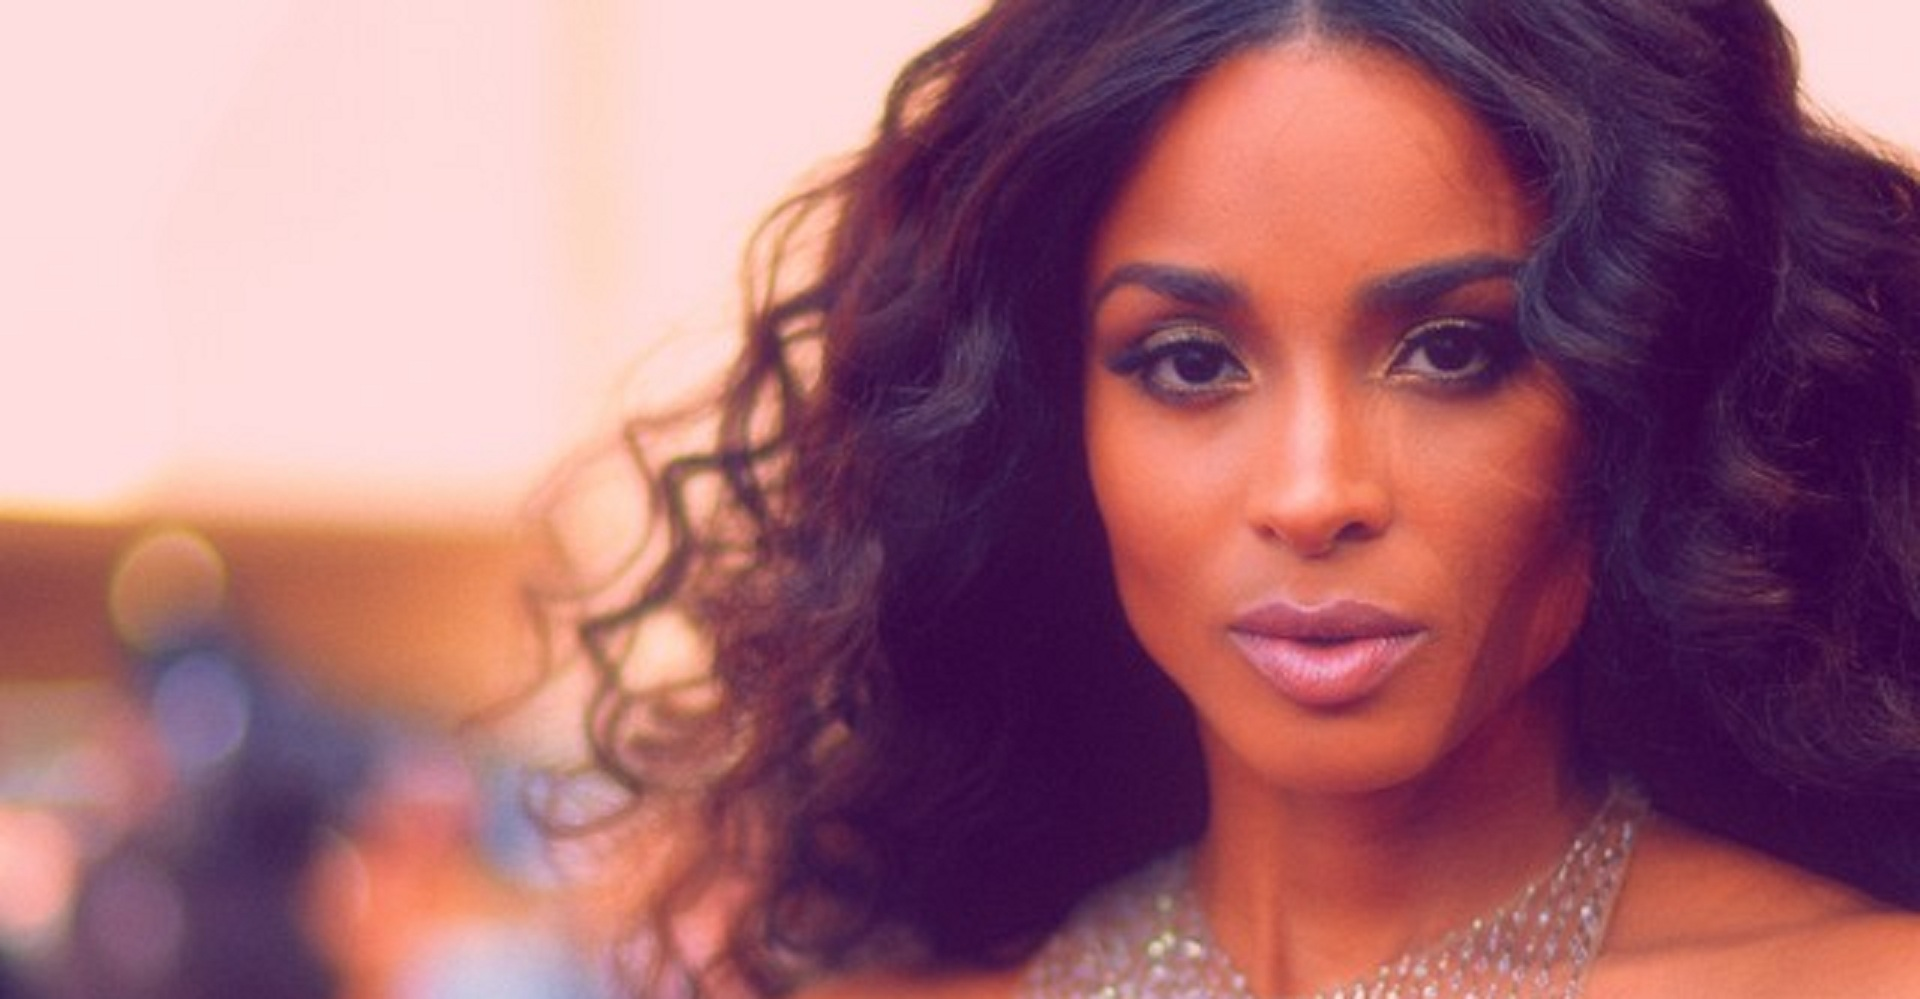 Heading For A Hit? Ciara's Latest Offering – 'Thinkin Bout You' Soars On Pop Radio.